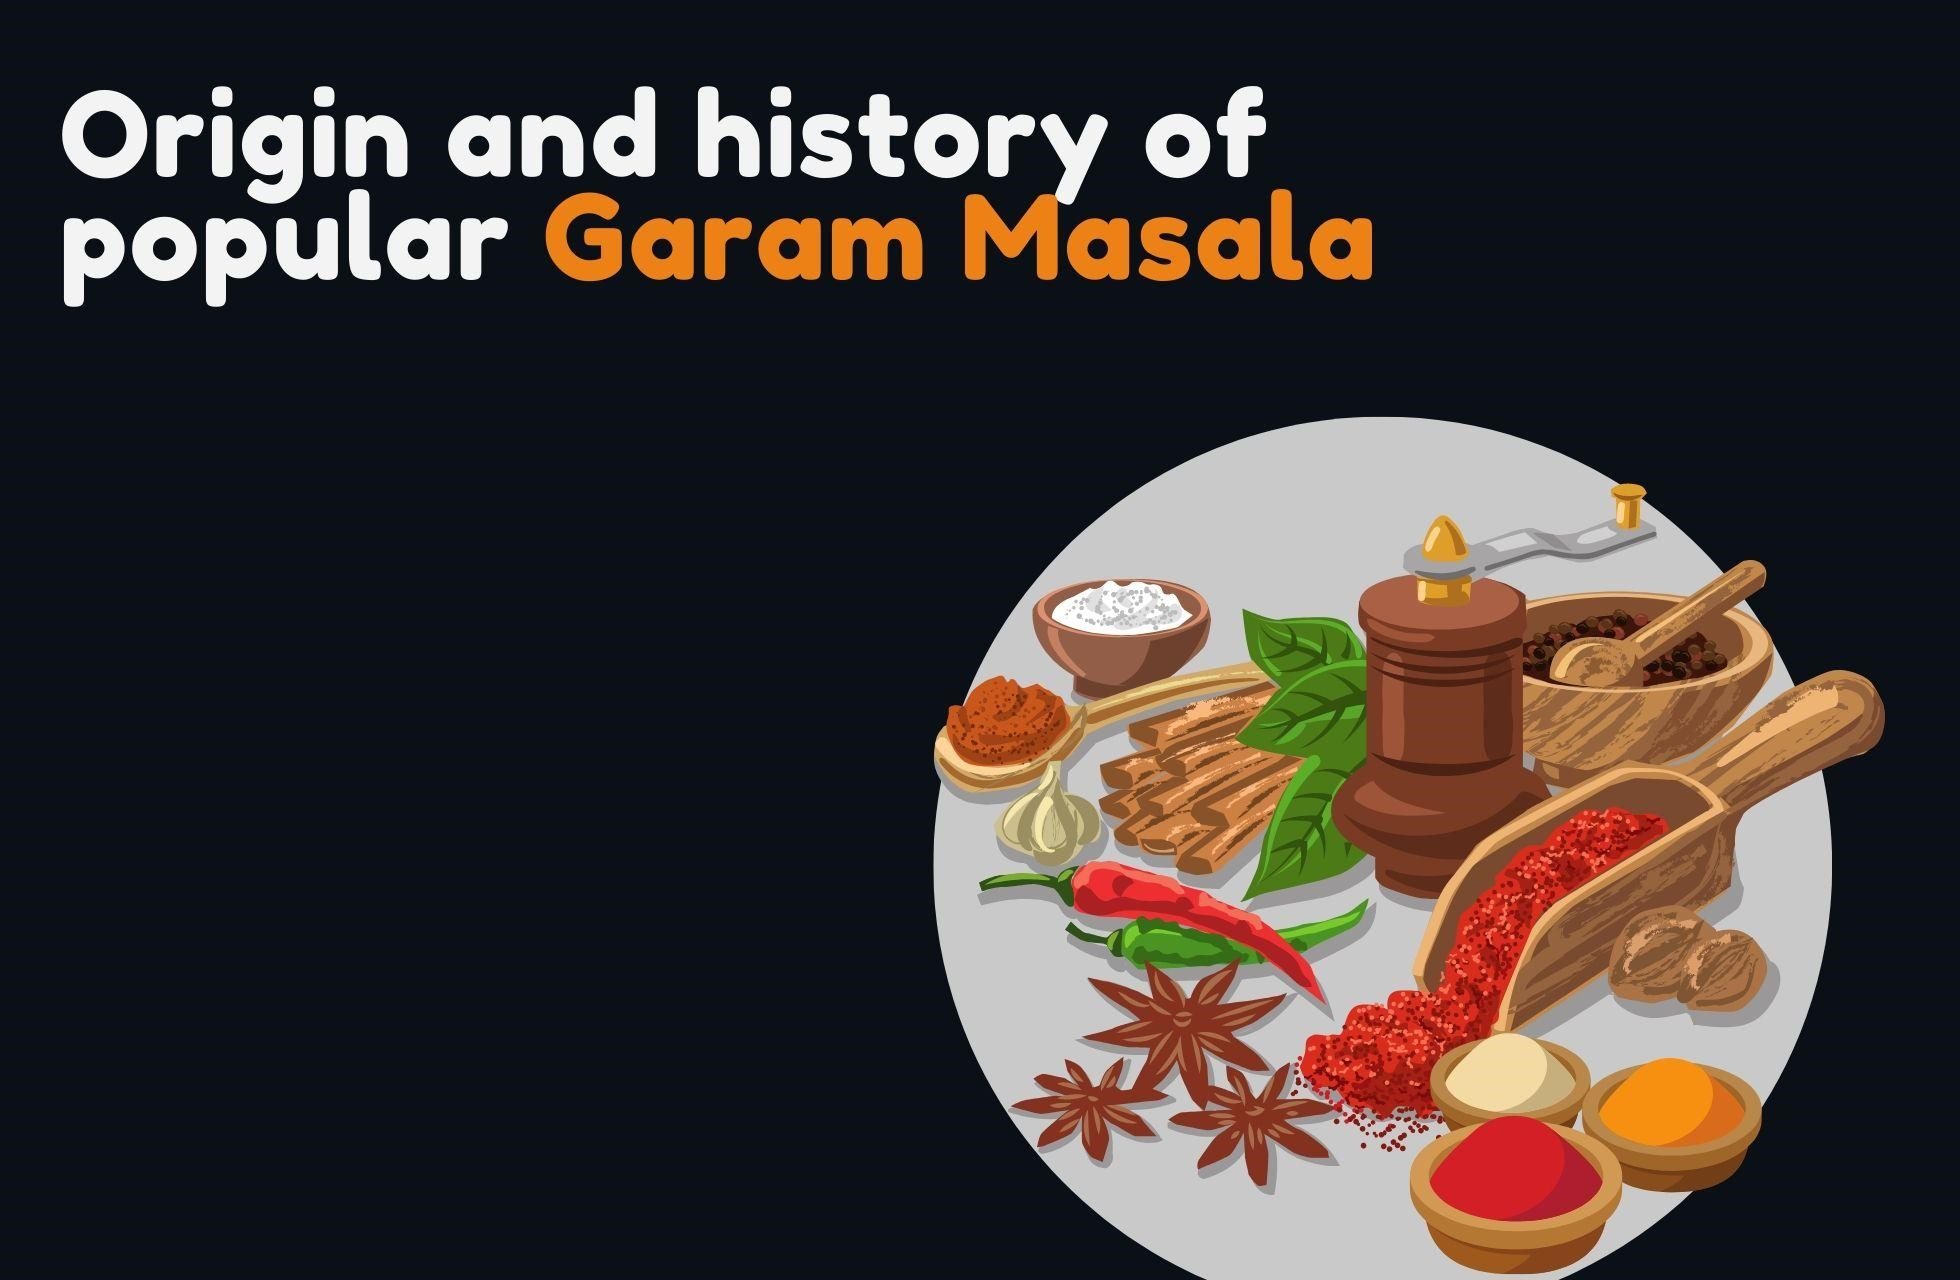 Hot Spices - The Origin and History of Garam Masala